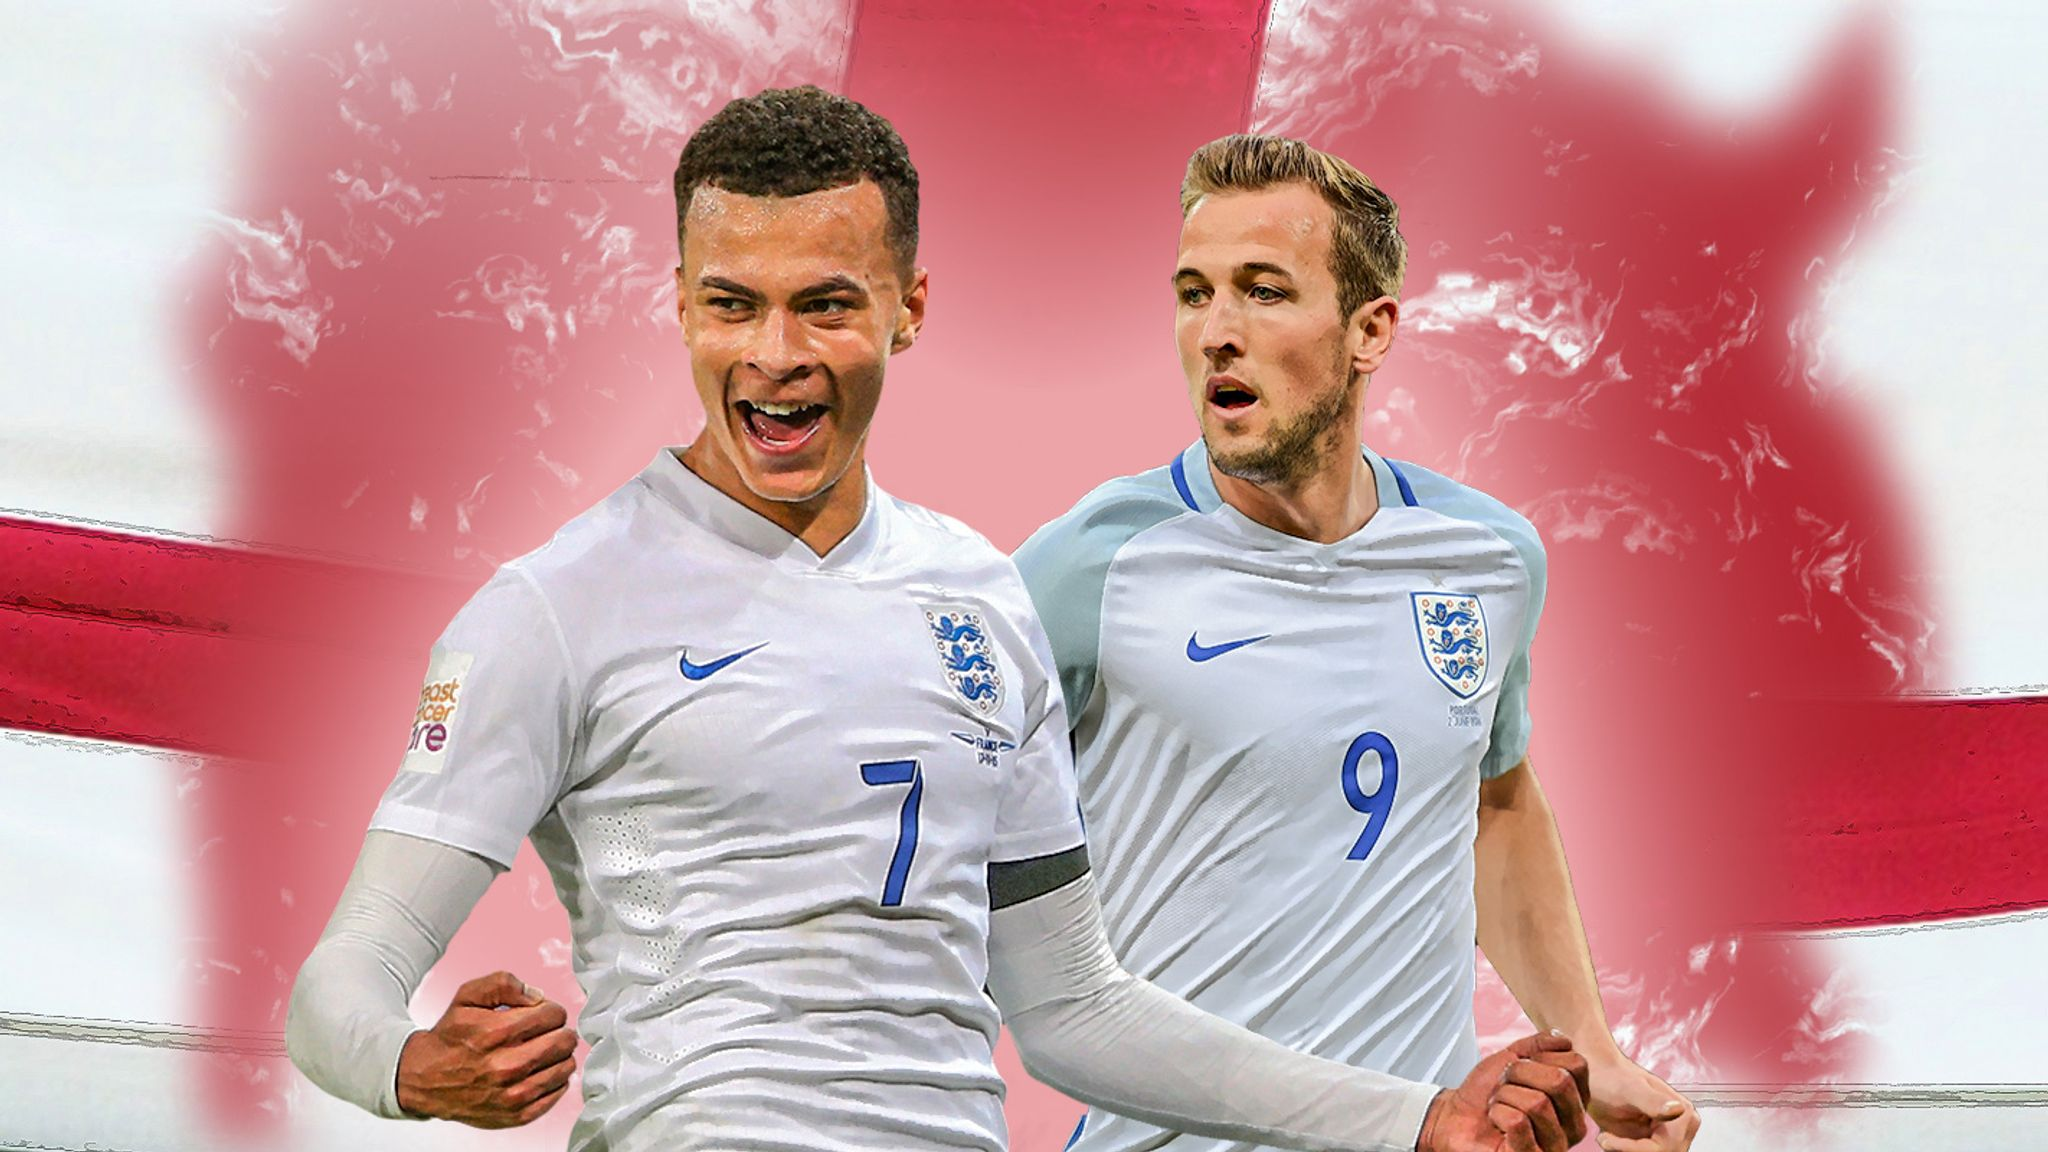 new concept 6c9c6 faa8d Harry Kane and Dele Alli's England partnership could be the ...